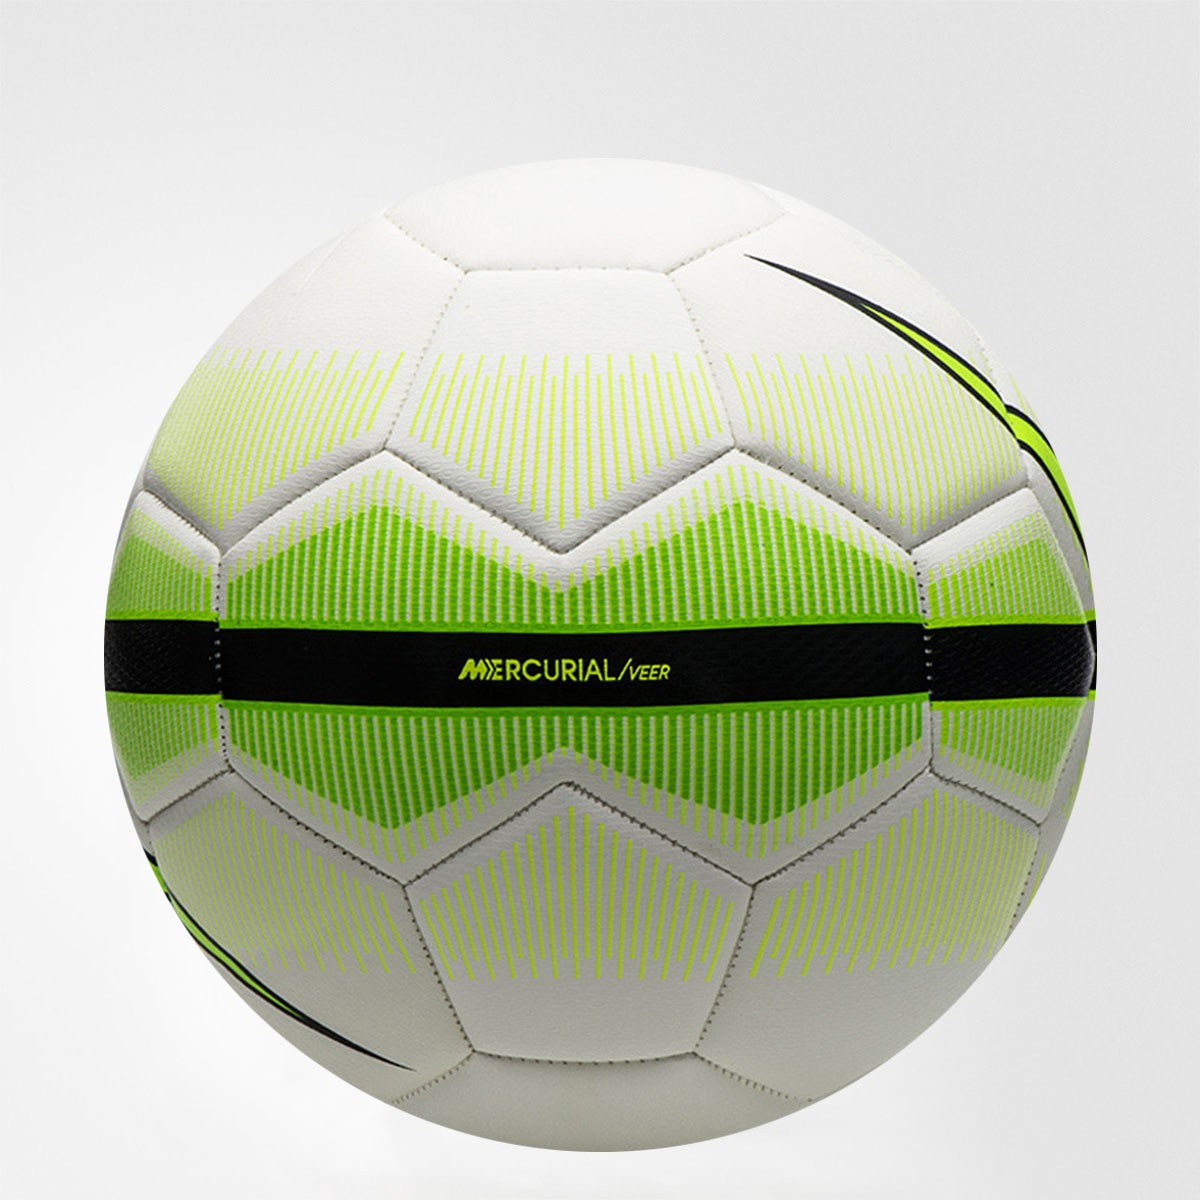 BOLA NIKE CAMPO MERCURIAL VEER